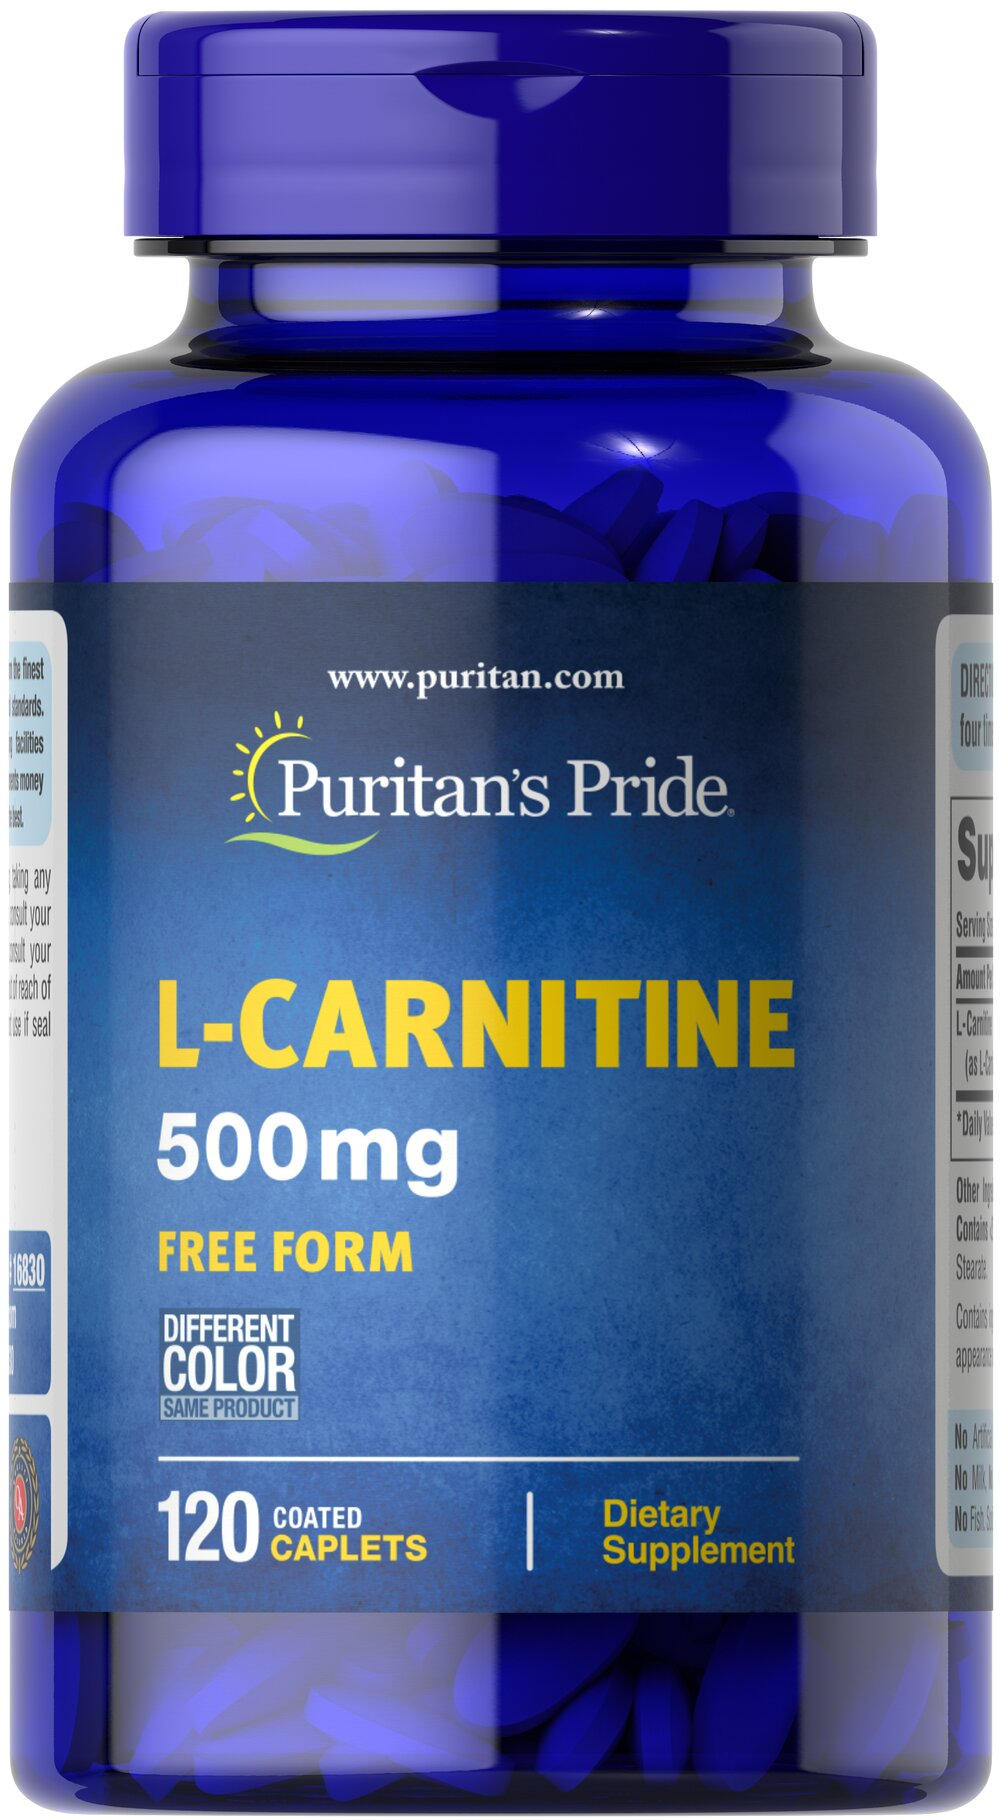 L-Carnitine 500 mg <p>Carnitine is a nitrogen-containing compound that assists in fat metabolism.** Carnitine plays an essential role in making fatty acids available for muscle tissue.** Carnitine is also found naturally in cells which use fat for energy.** Carnitine is found throughout the body, including in the heart, muscles, liver and kidney.** Carnitine also helps the body use energy stores to power muscular contractions - providing support for endurance exercise and during recovery f